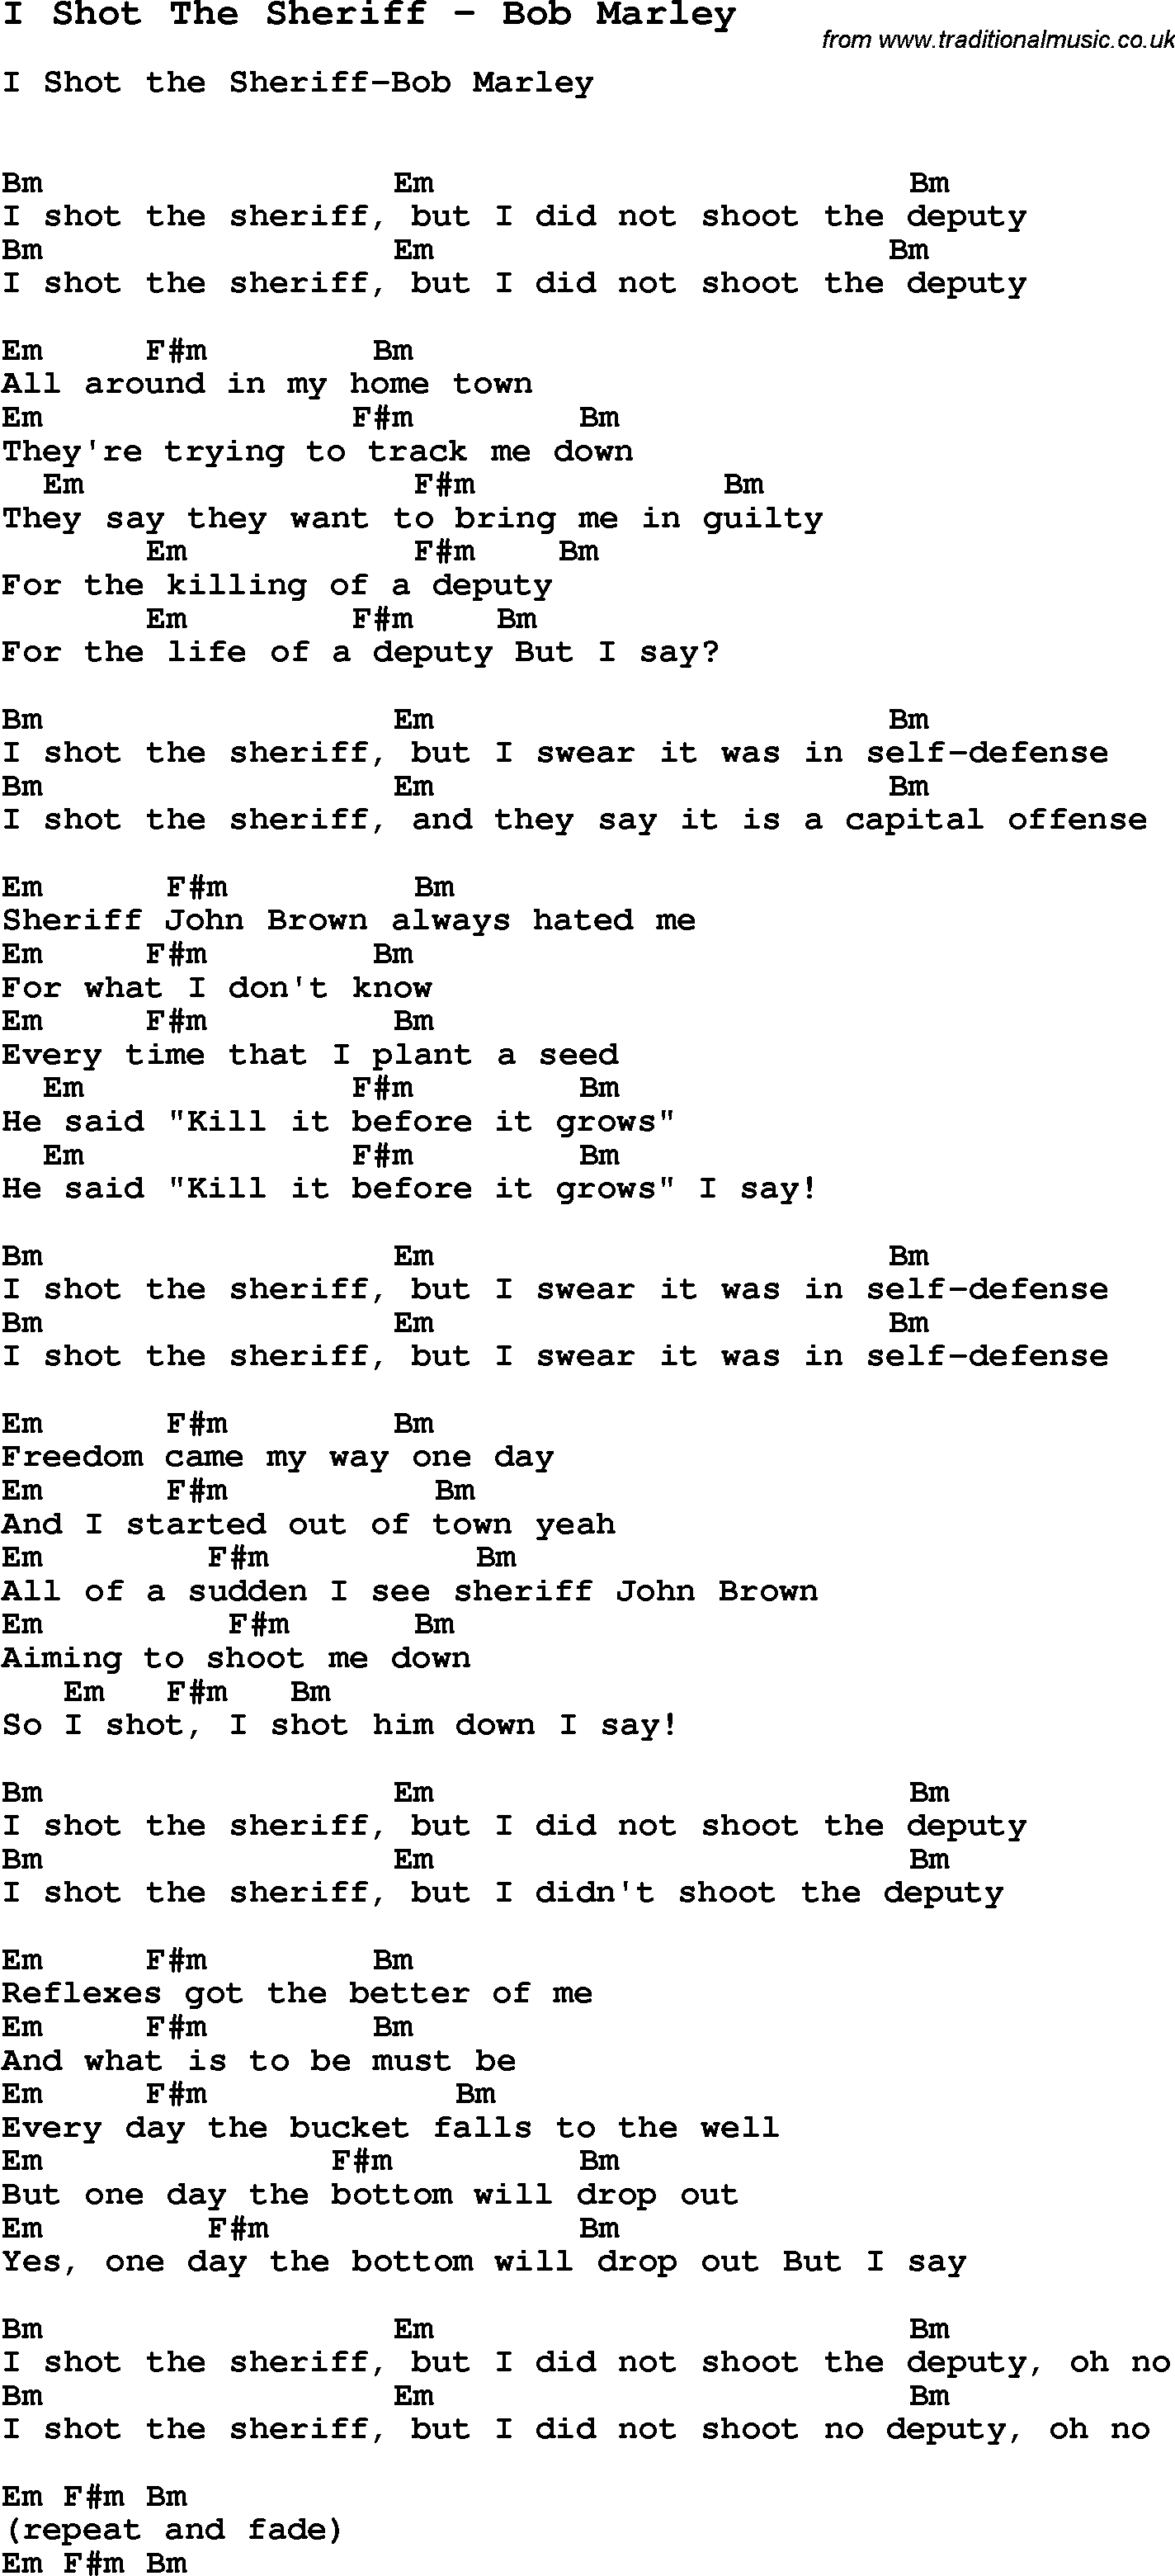 Song i shot the sheriff by bob marley song lyric for vocal song i shot the sheriff by bob marley with lyrics for vocal performance and accompaniment hexwebz Gallery